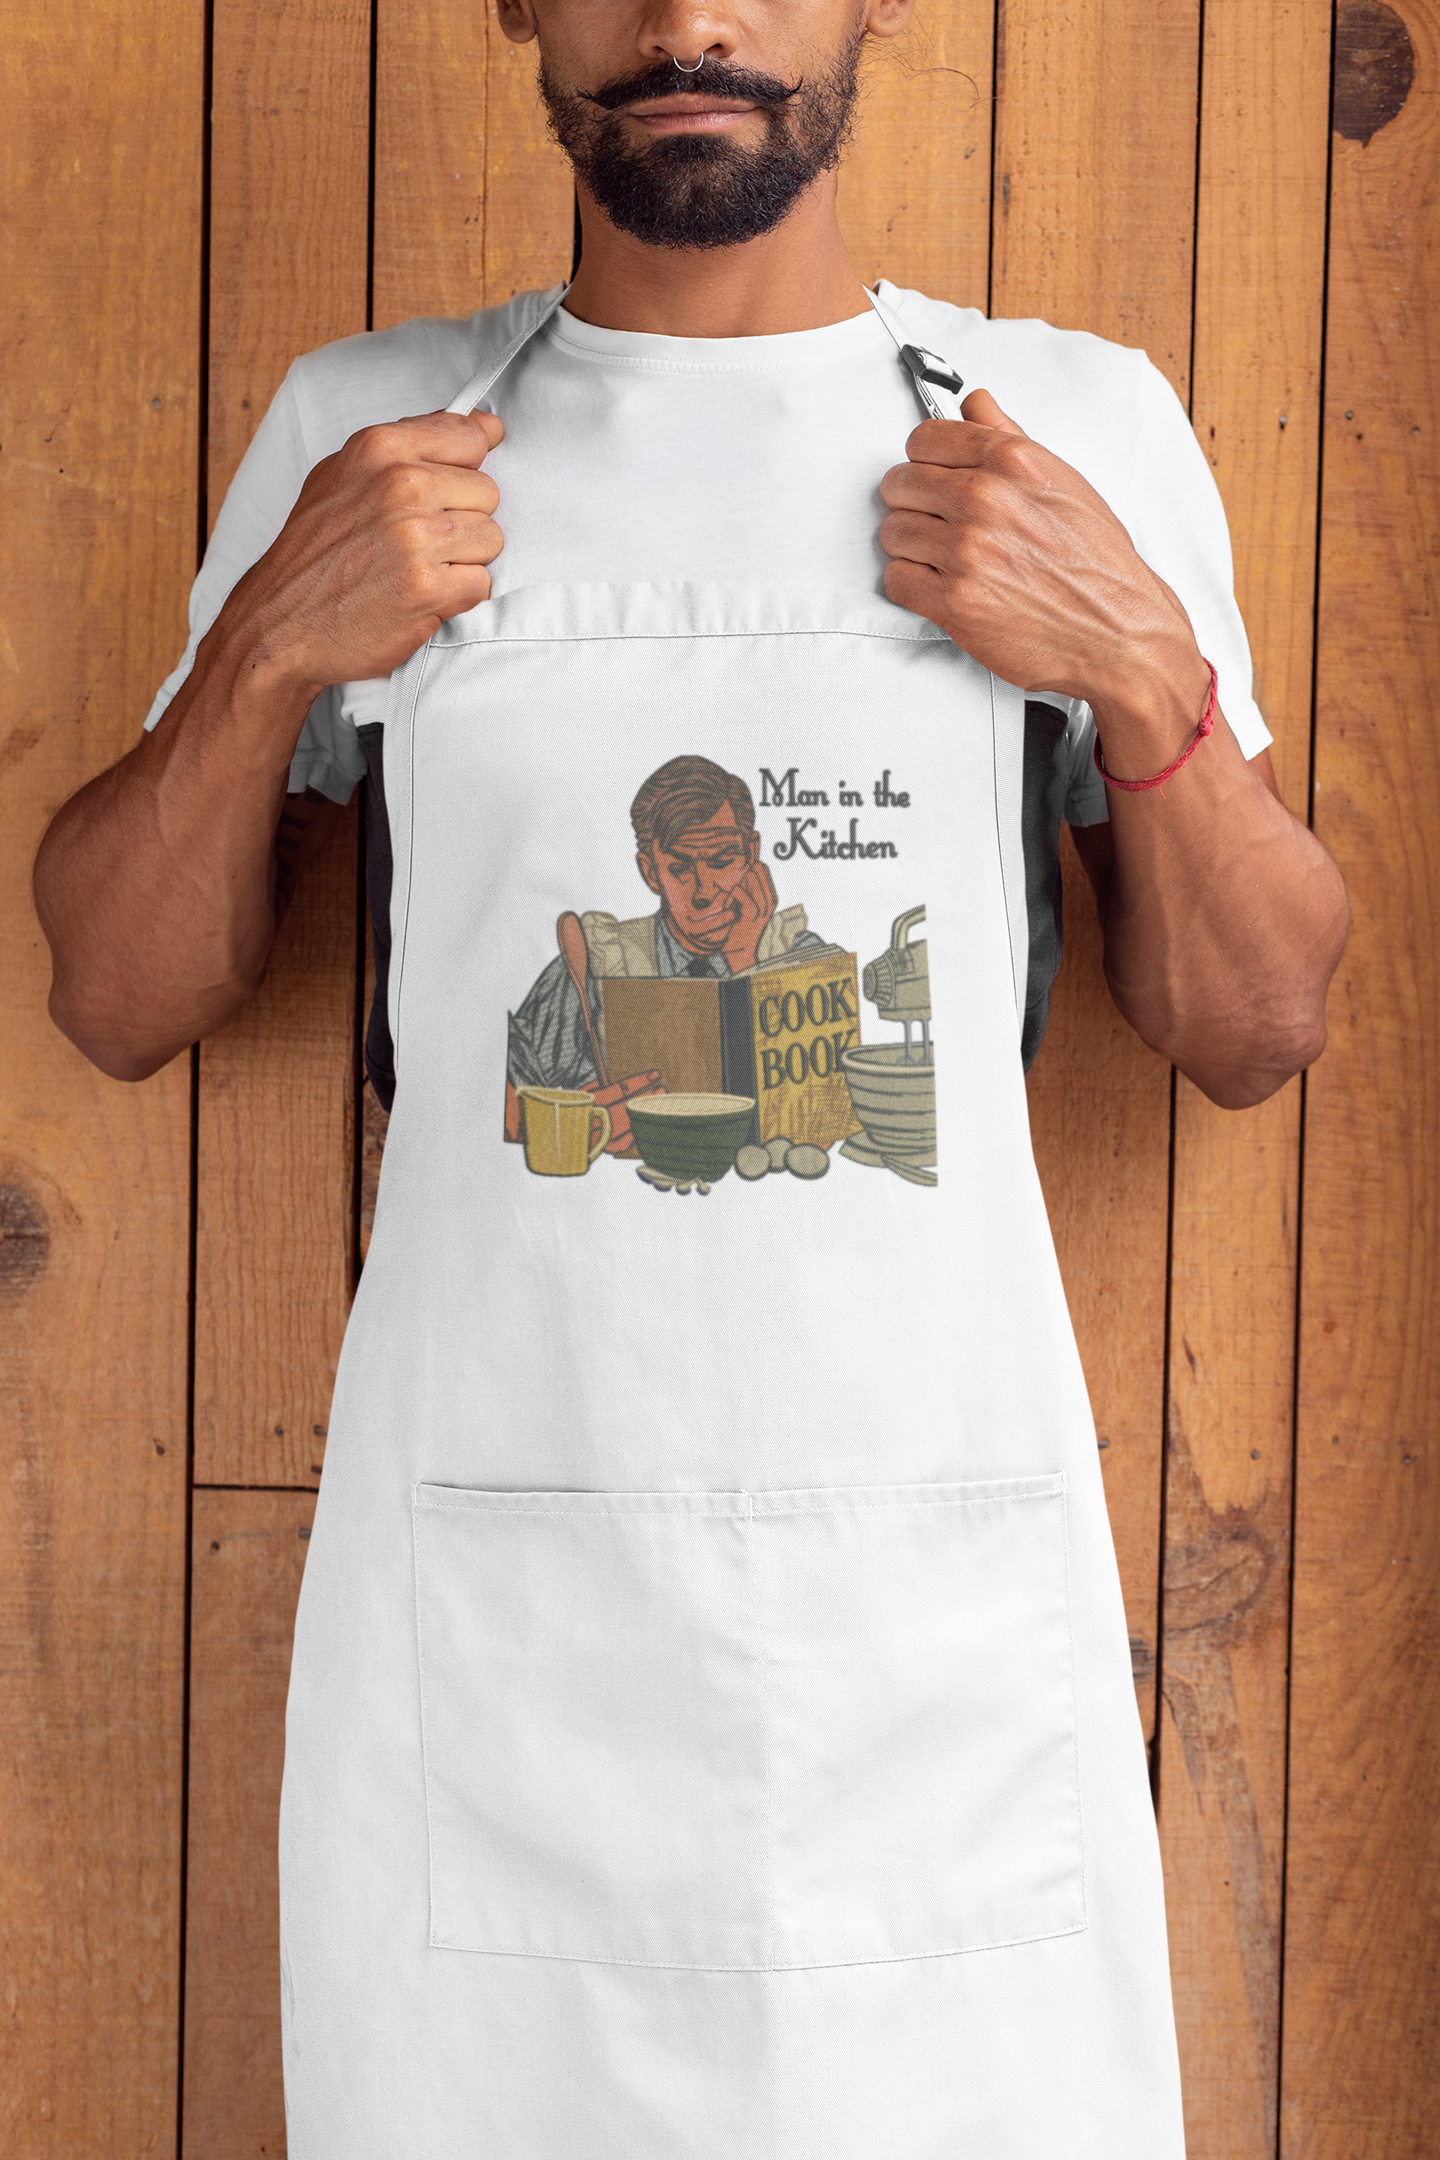 Embroidered apron with Man in kitchen design